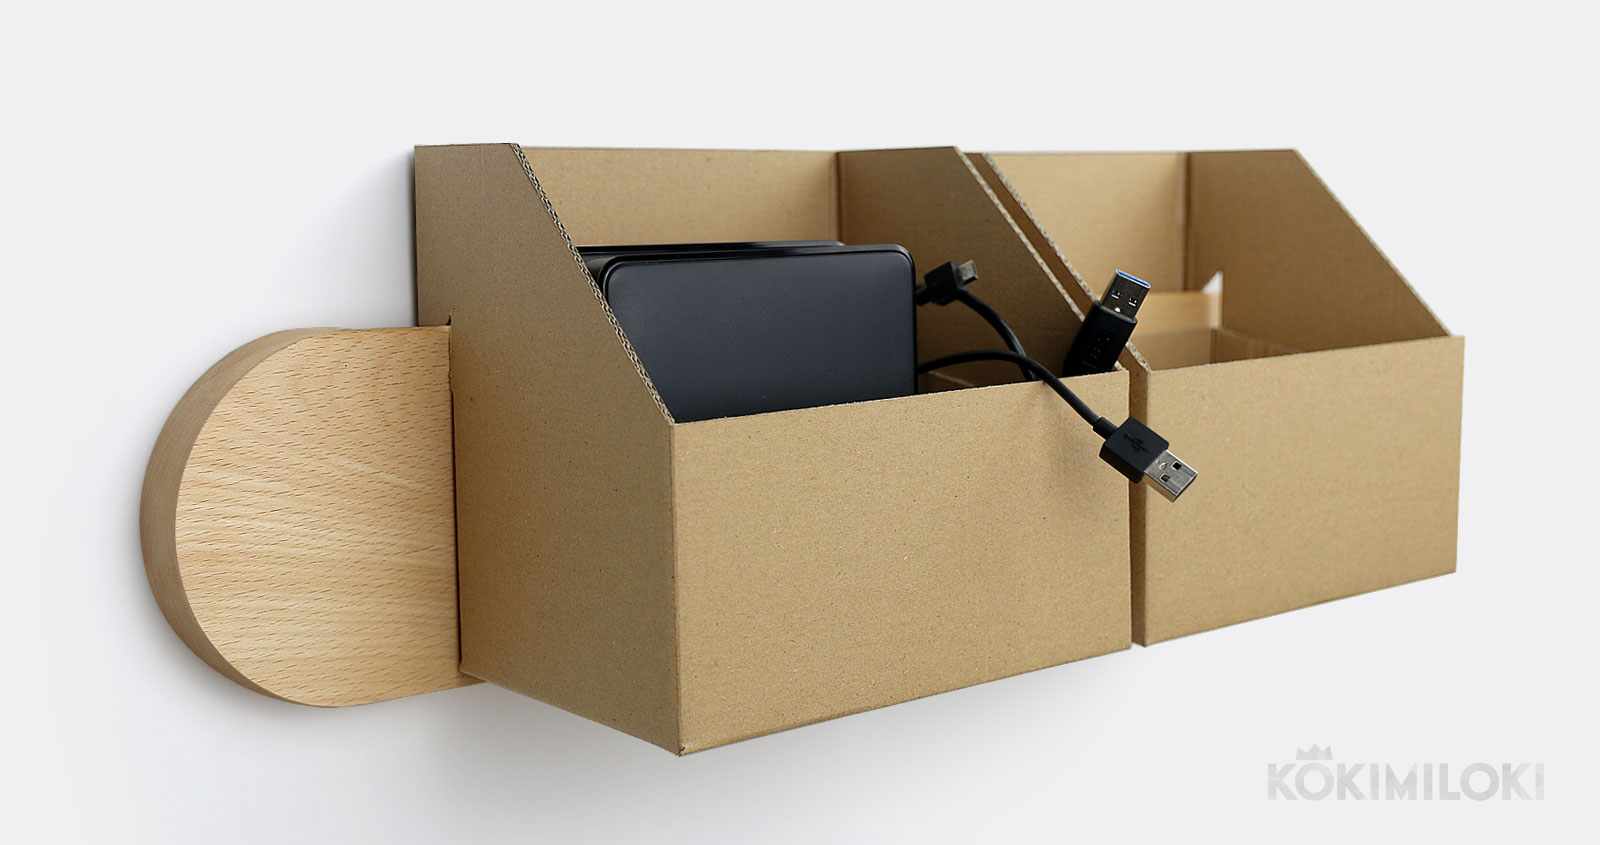 wall-mounted cardboard catch-all box